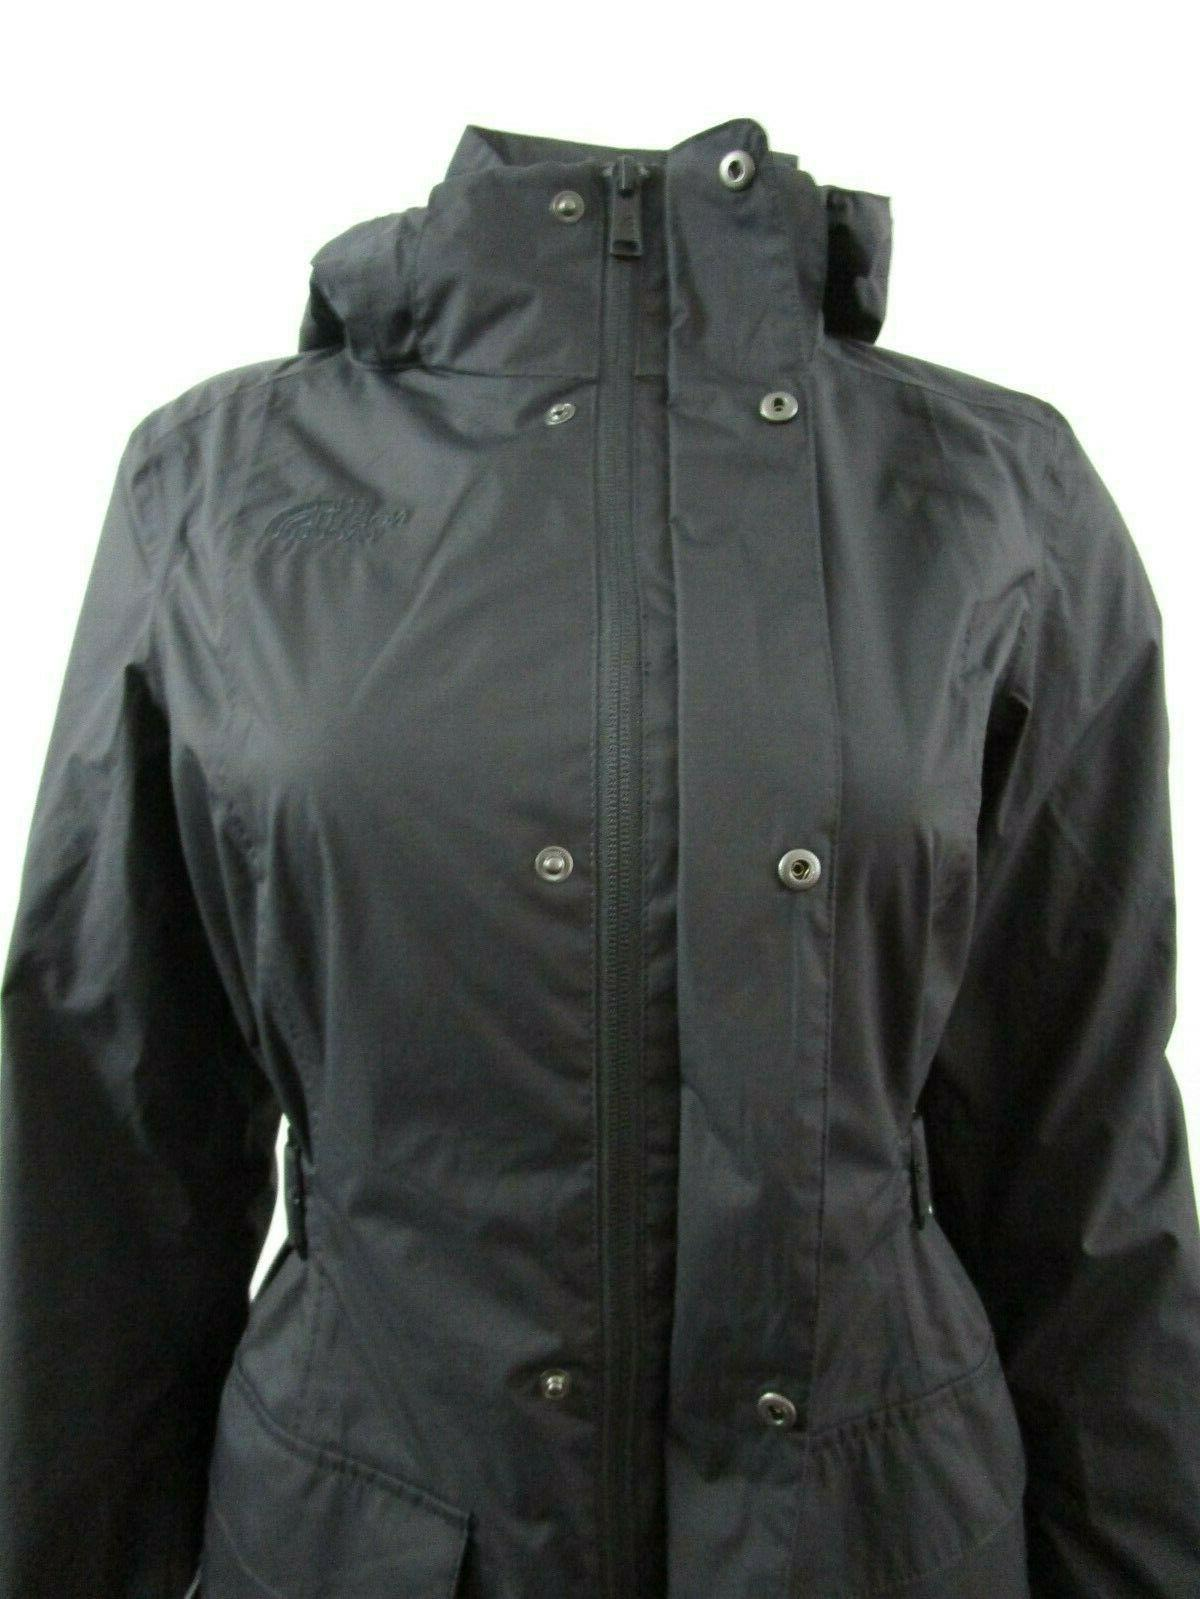 NWT Womens The North Face Waterproof Hooded Rain Jacket